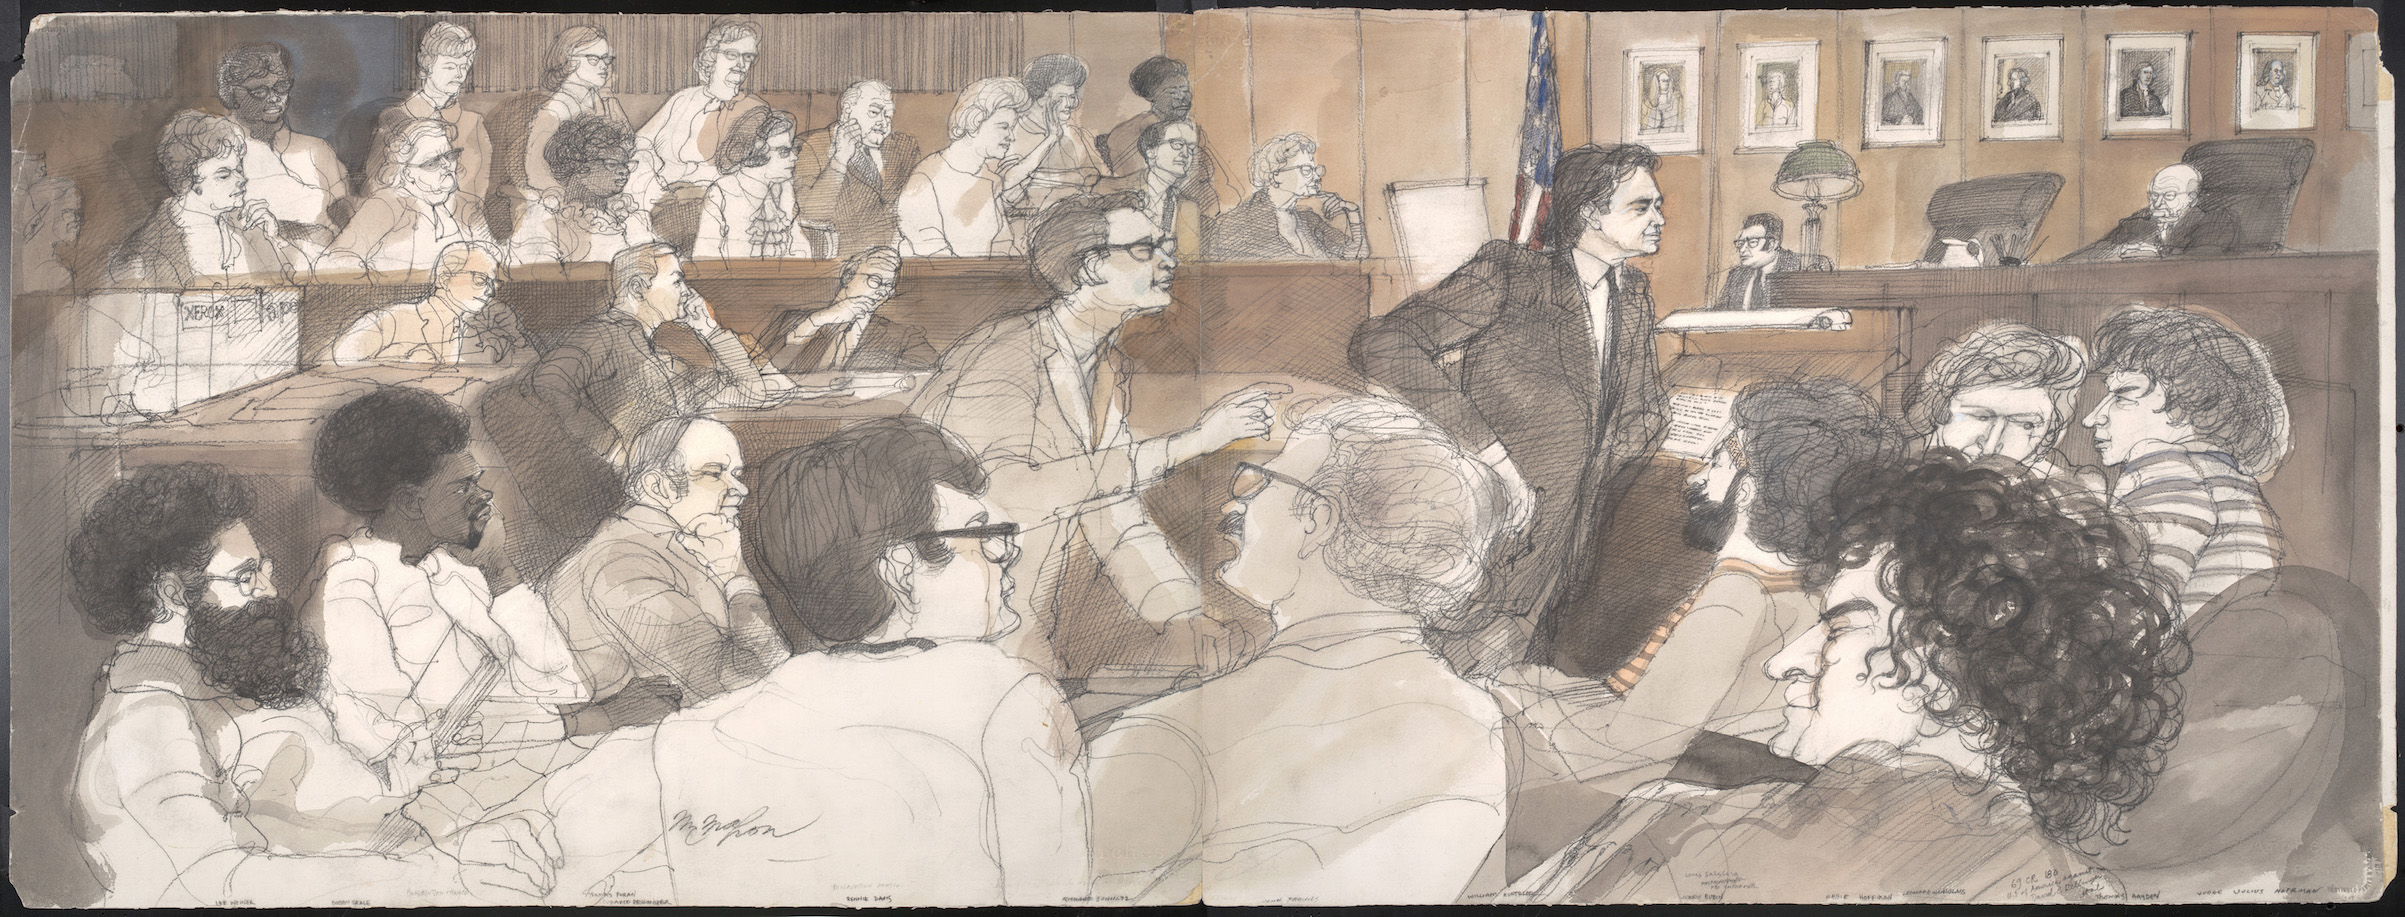 Panoramic view of courtroom with the defendants, prosecutors, jury, and judge, in a courtroom illustration (by Franklin McMahon) during the trial of the Chicago Eight, Chicago, Illinois, late 1969 or early 1970.